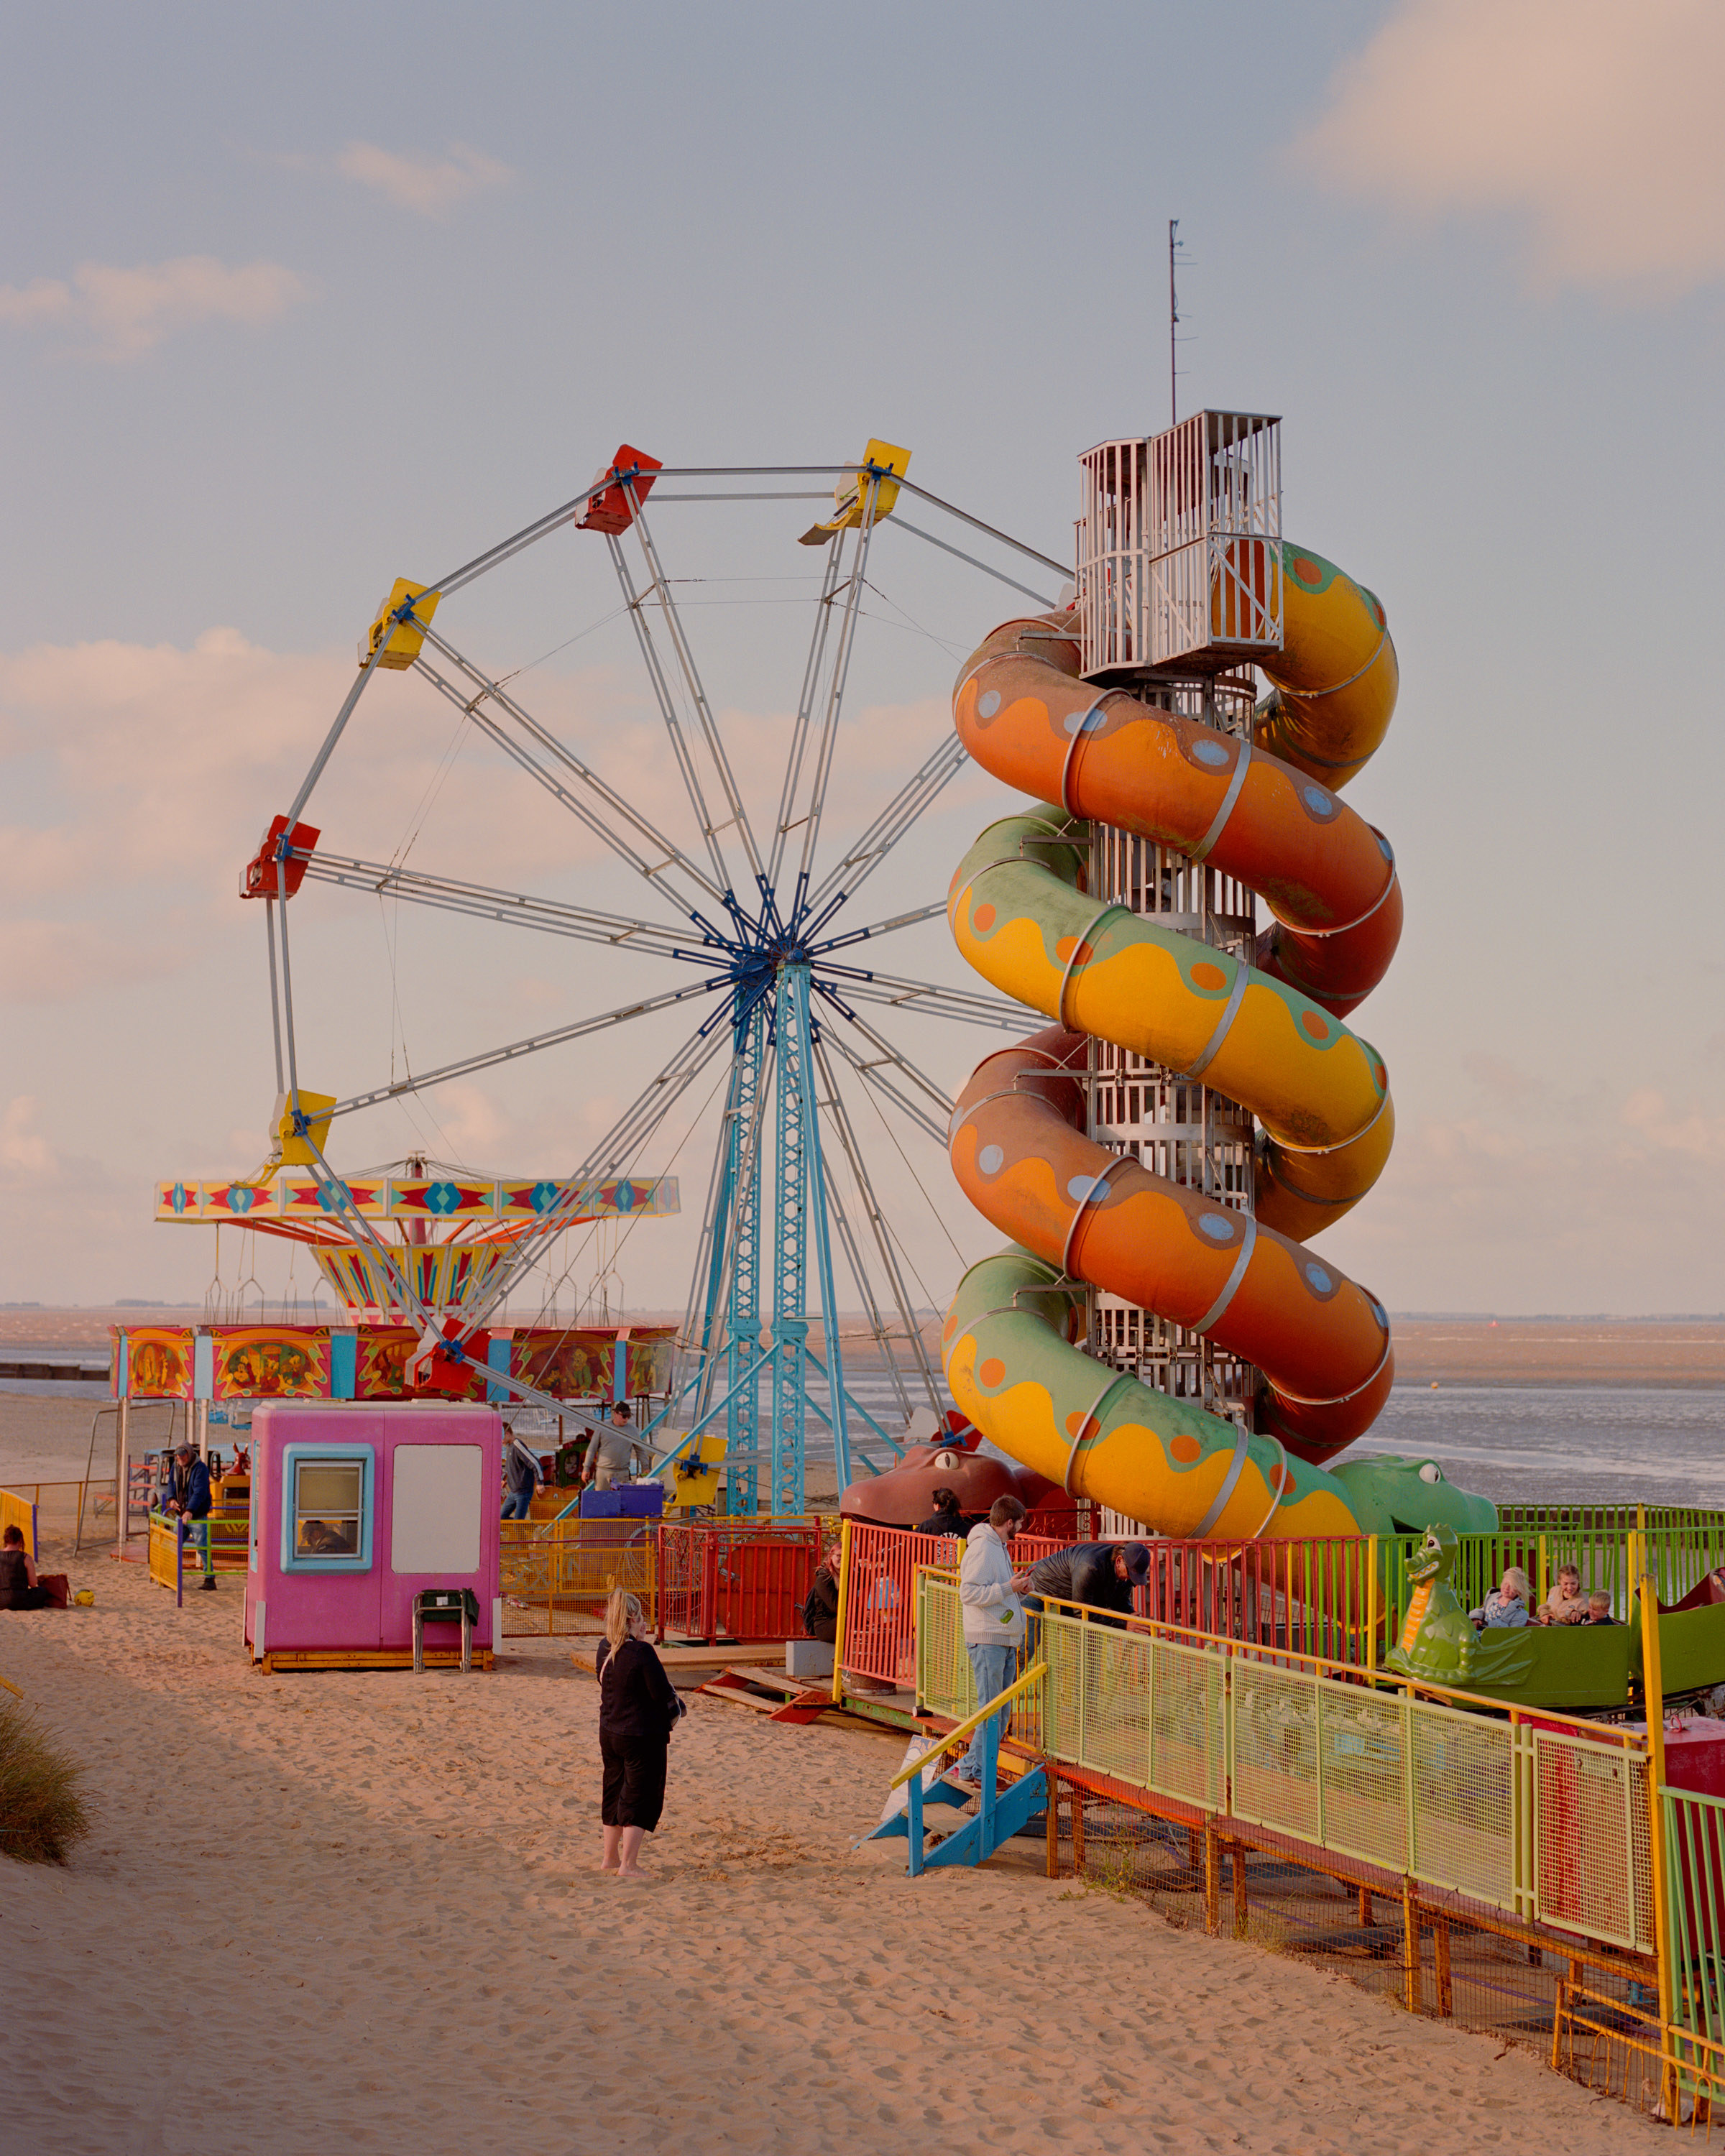 A woman in black and a man in a white sweatshirt stand next to colorful carnival equipment on the beach.